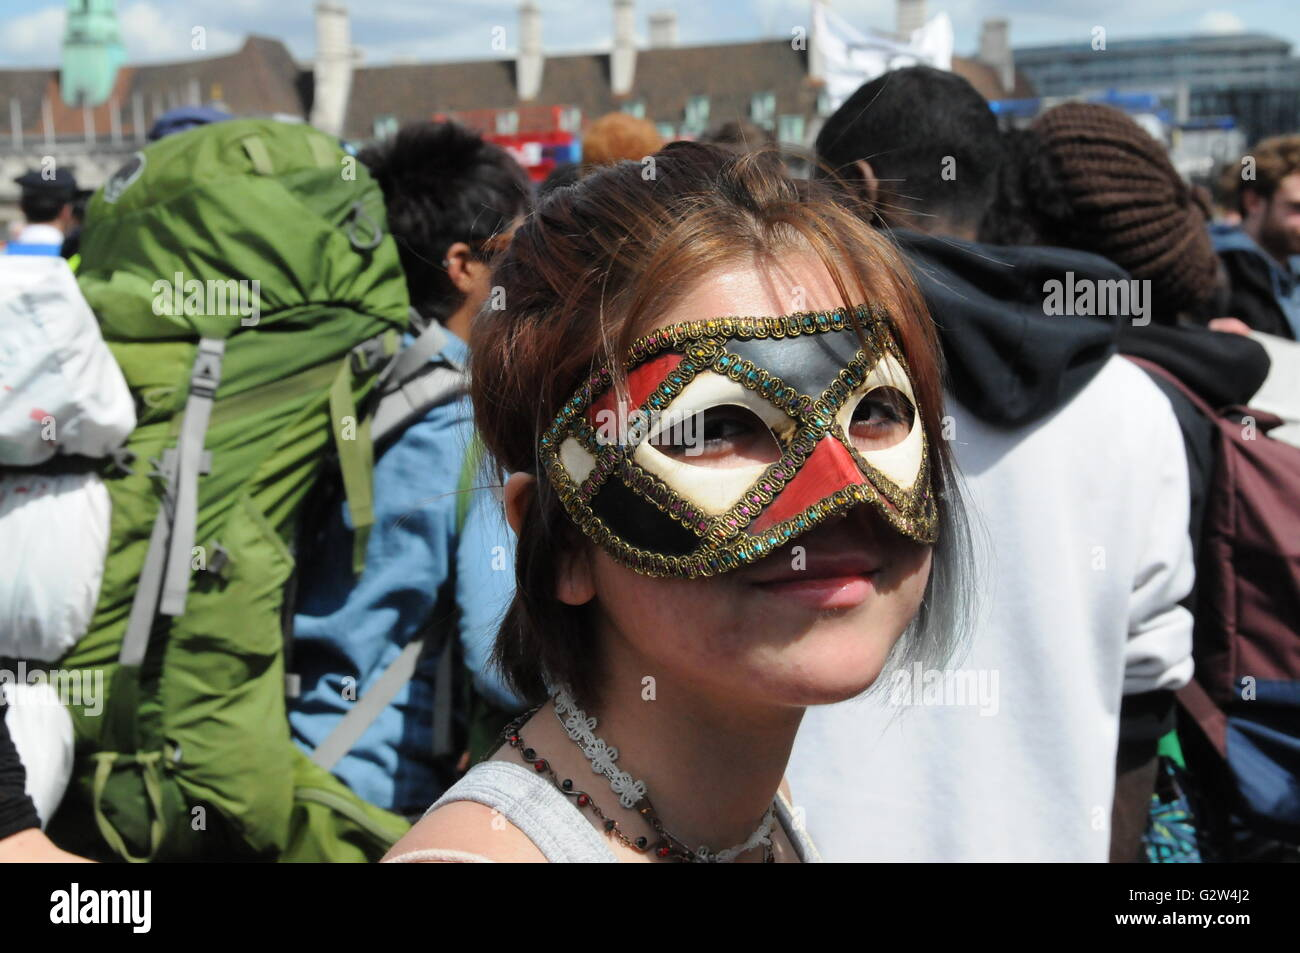 Young girl protester in a leather mask, at the anti austerity protest on Westminster Bridge. - Stock Image